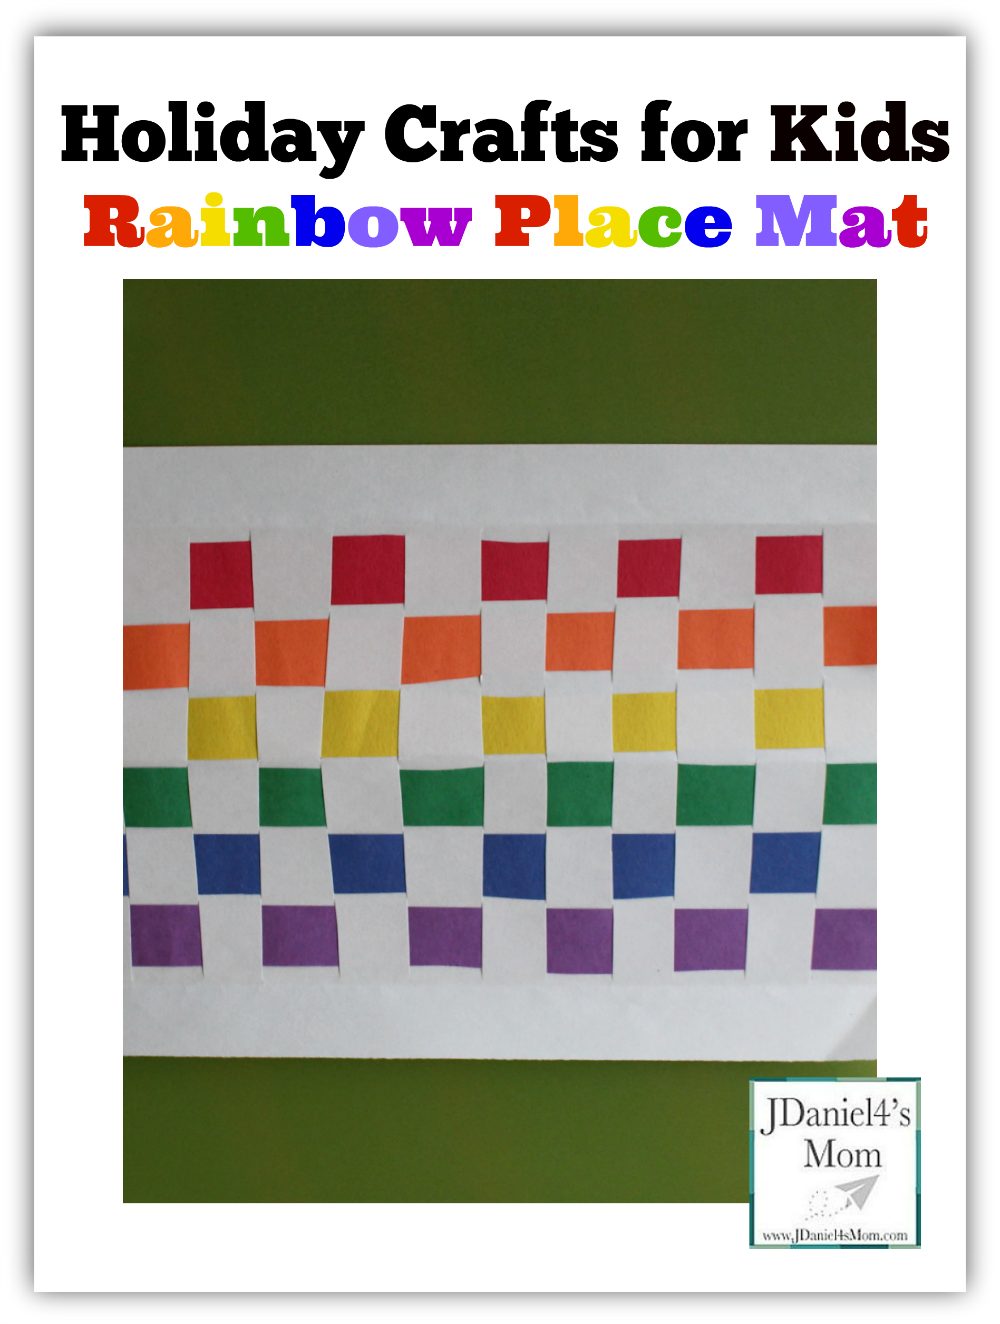 Holiday Crafts for Kids- Rainbow